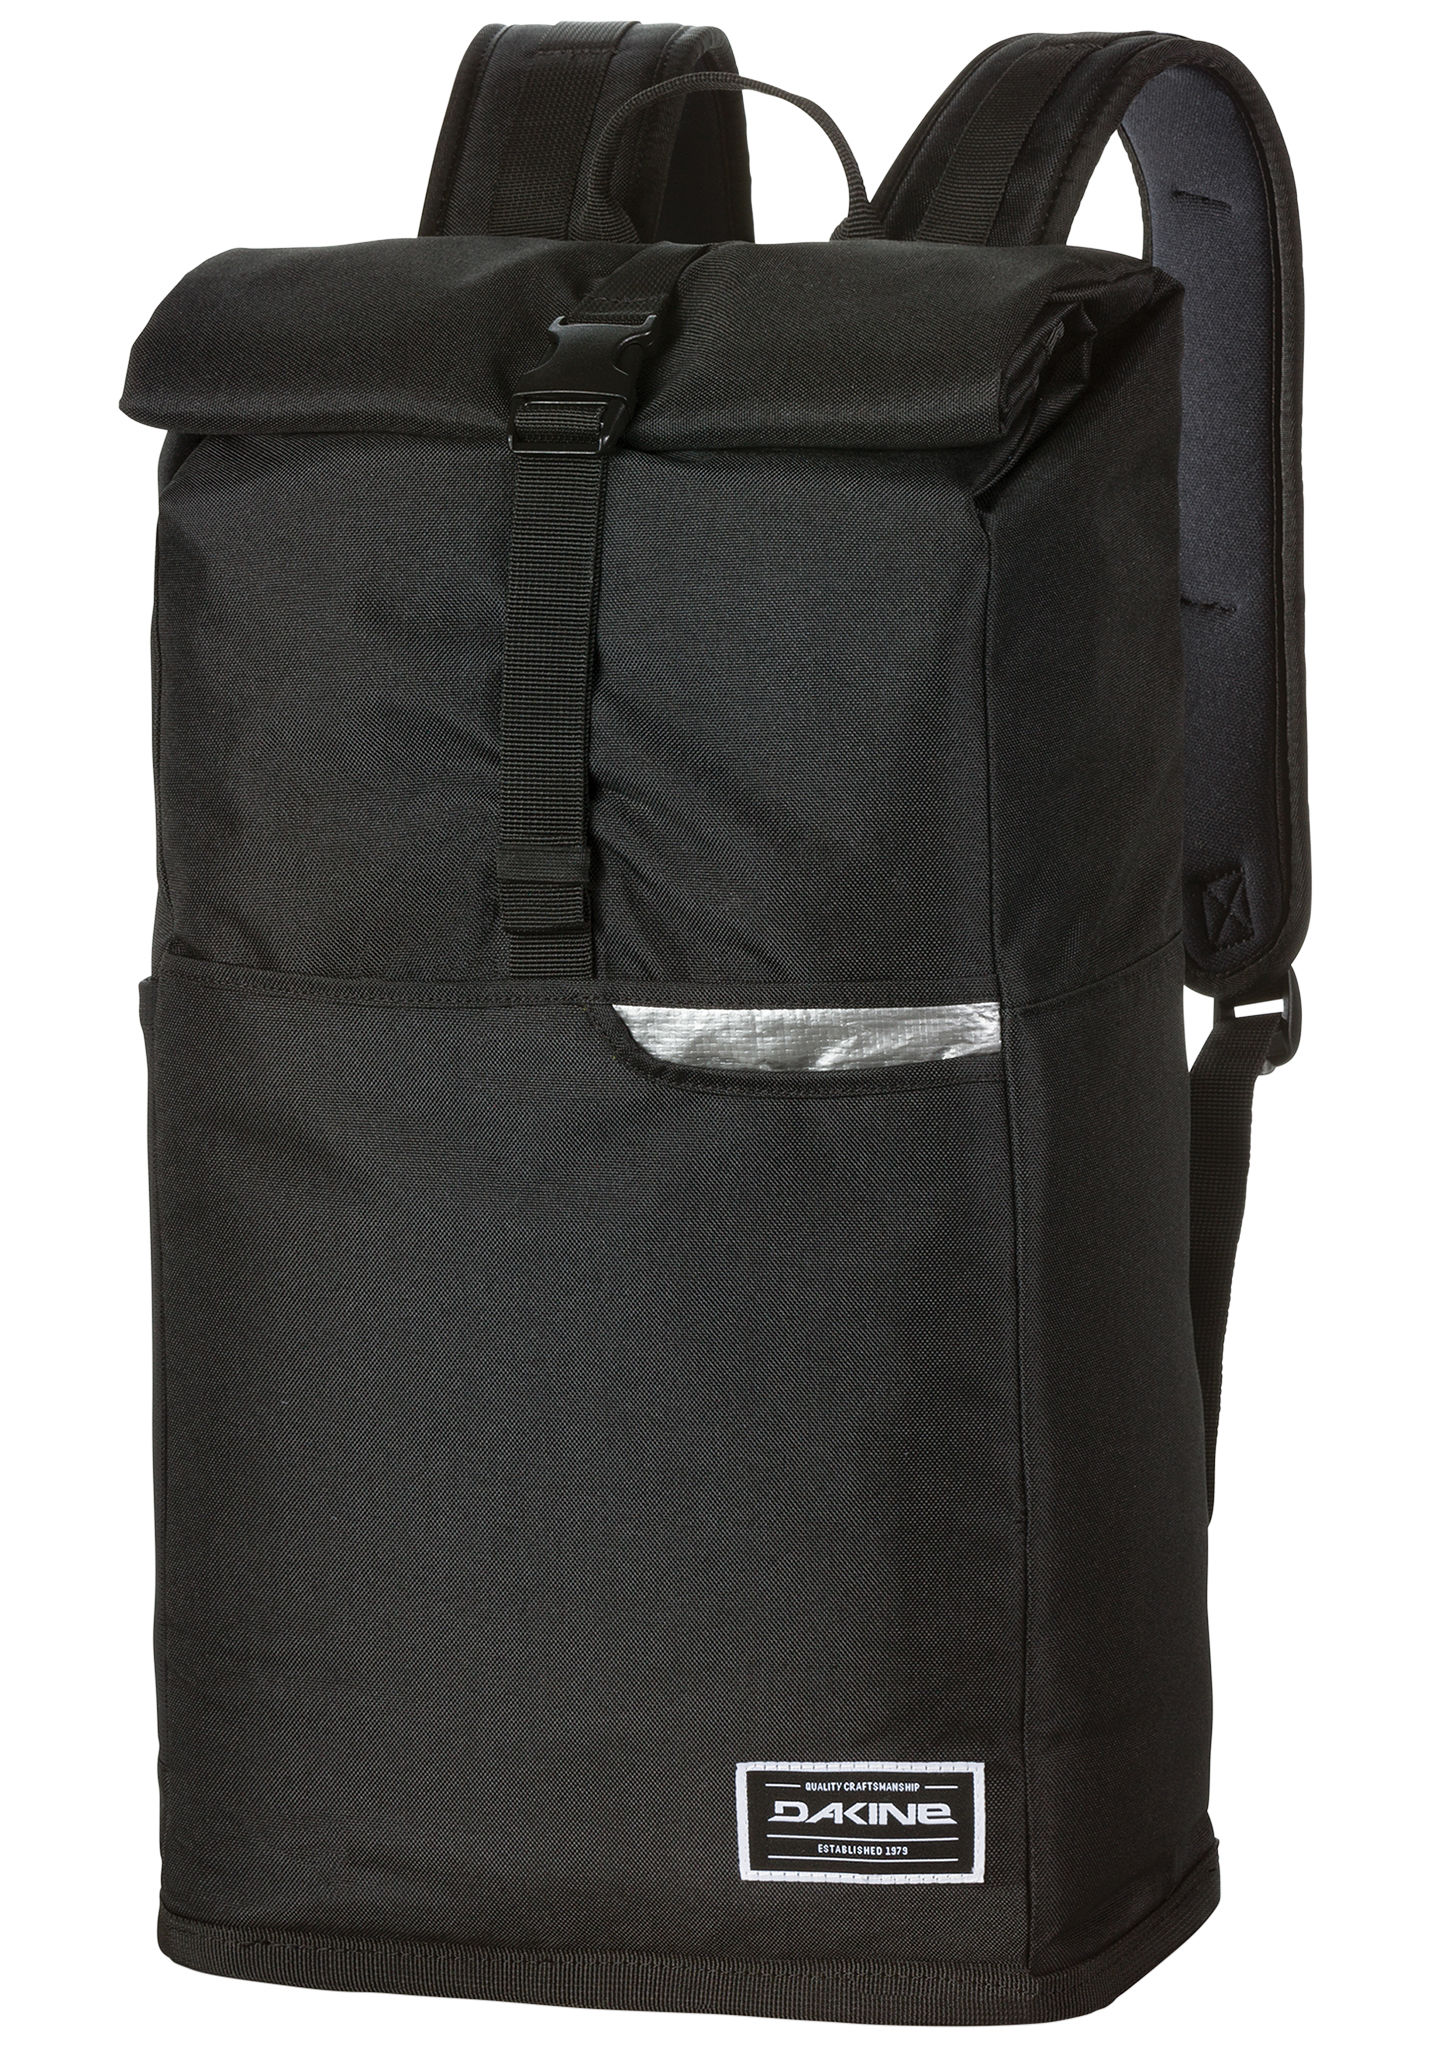 Dakine Section Roll Top Wet/Dry 28L - Backpack for Men - Black ...